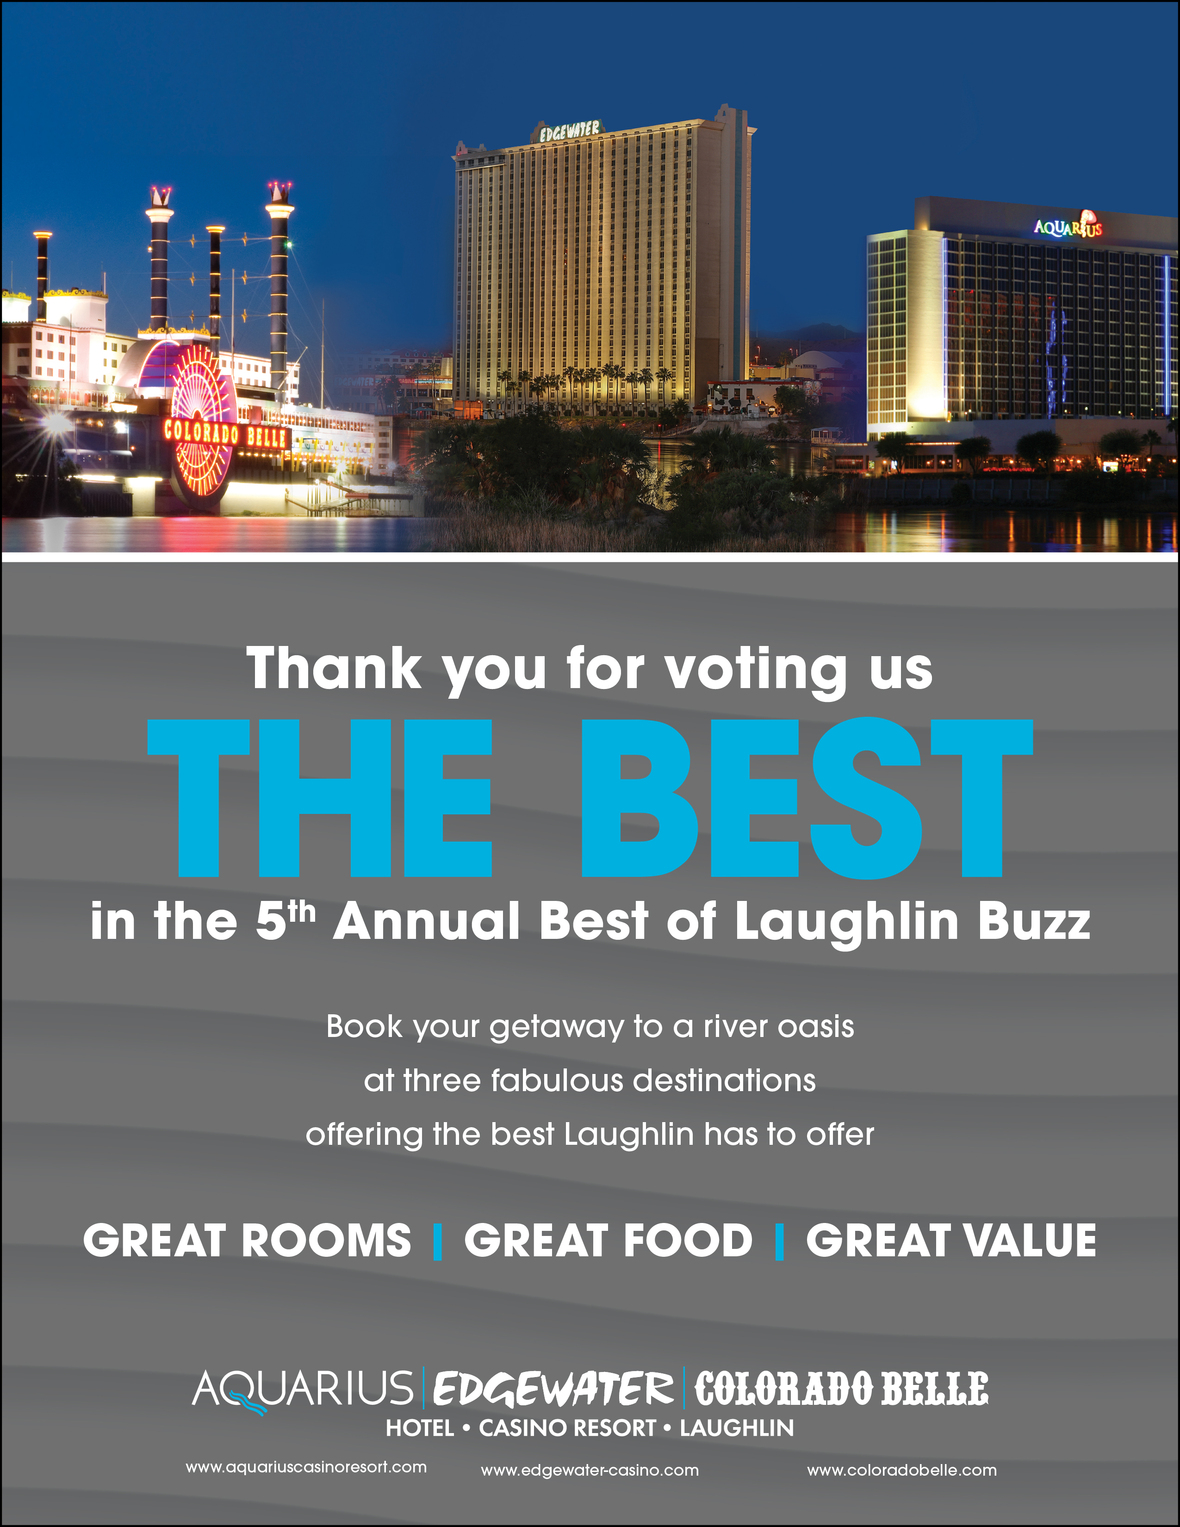 LCG00186 - MEDIA Laughlin Buzz Best Of 2019 Online Ad RUSH 1008-v5-FINAL-01